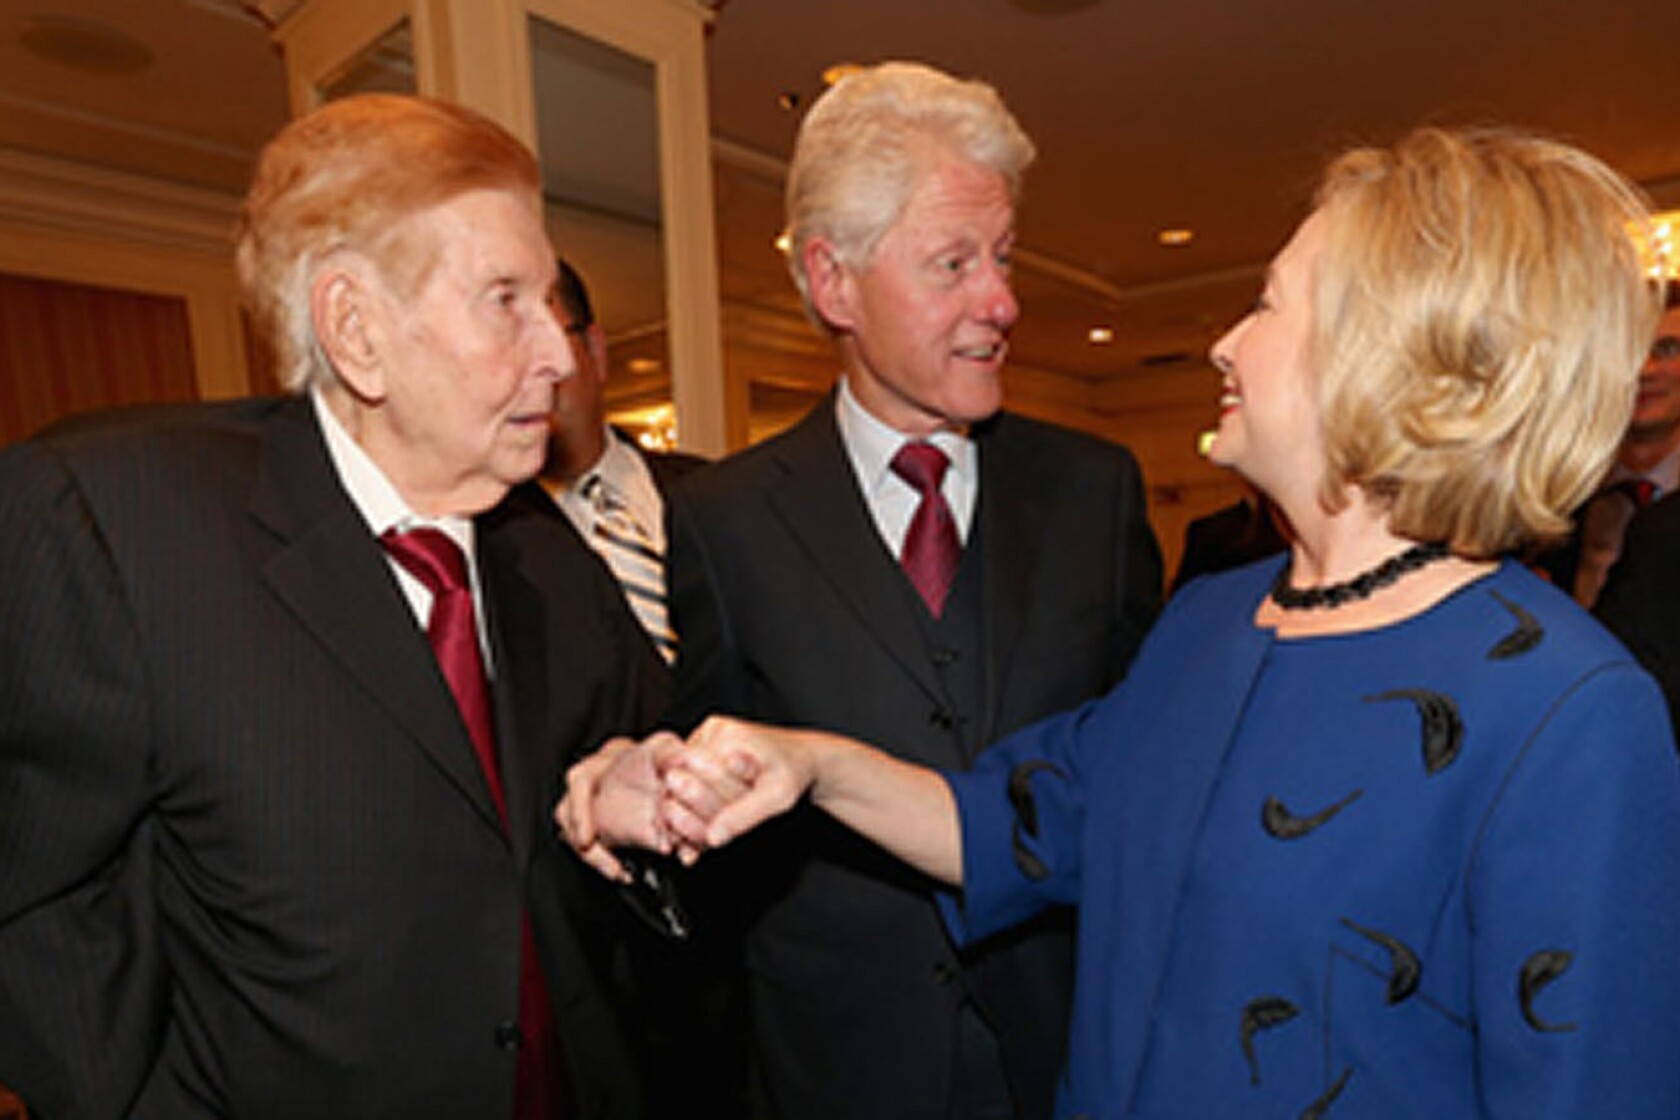 sumner redstone - photo #9